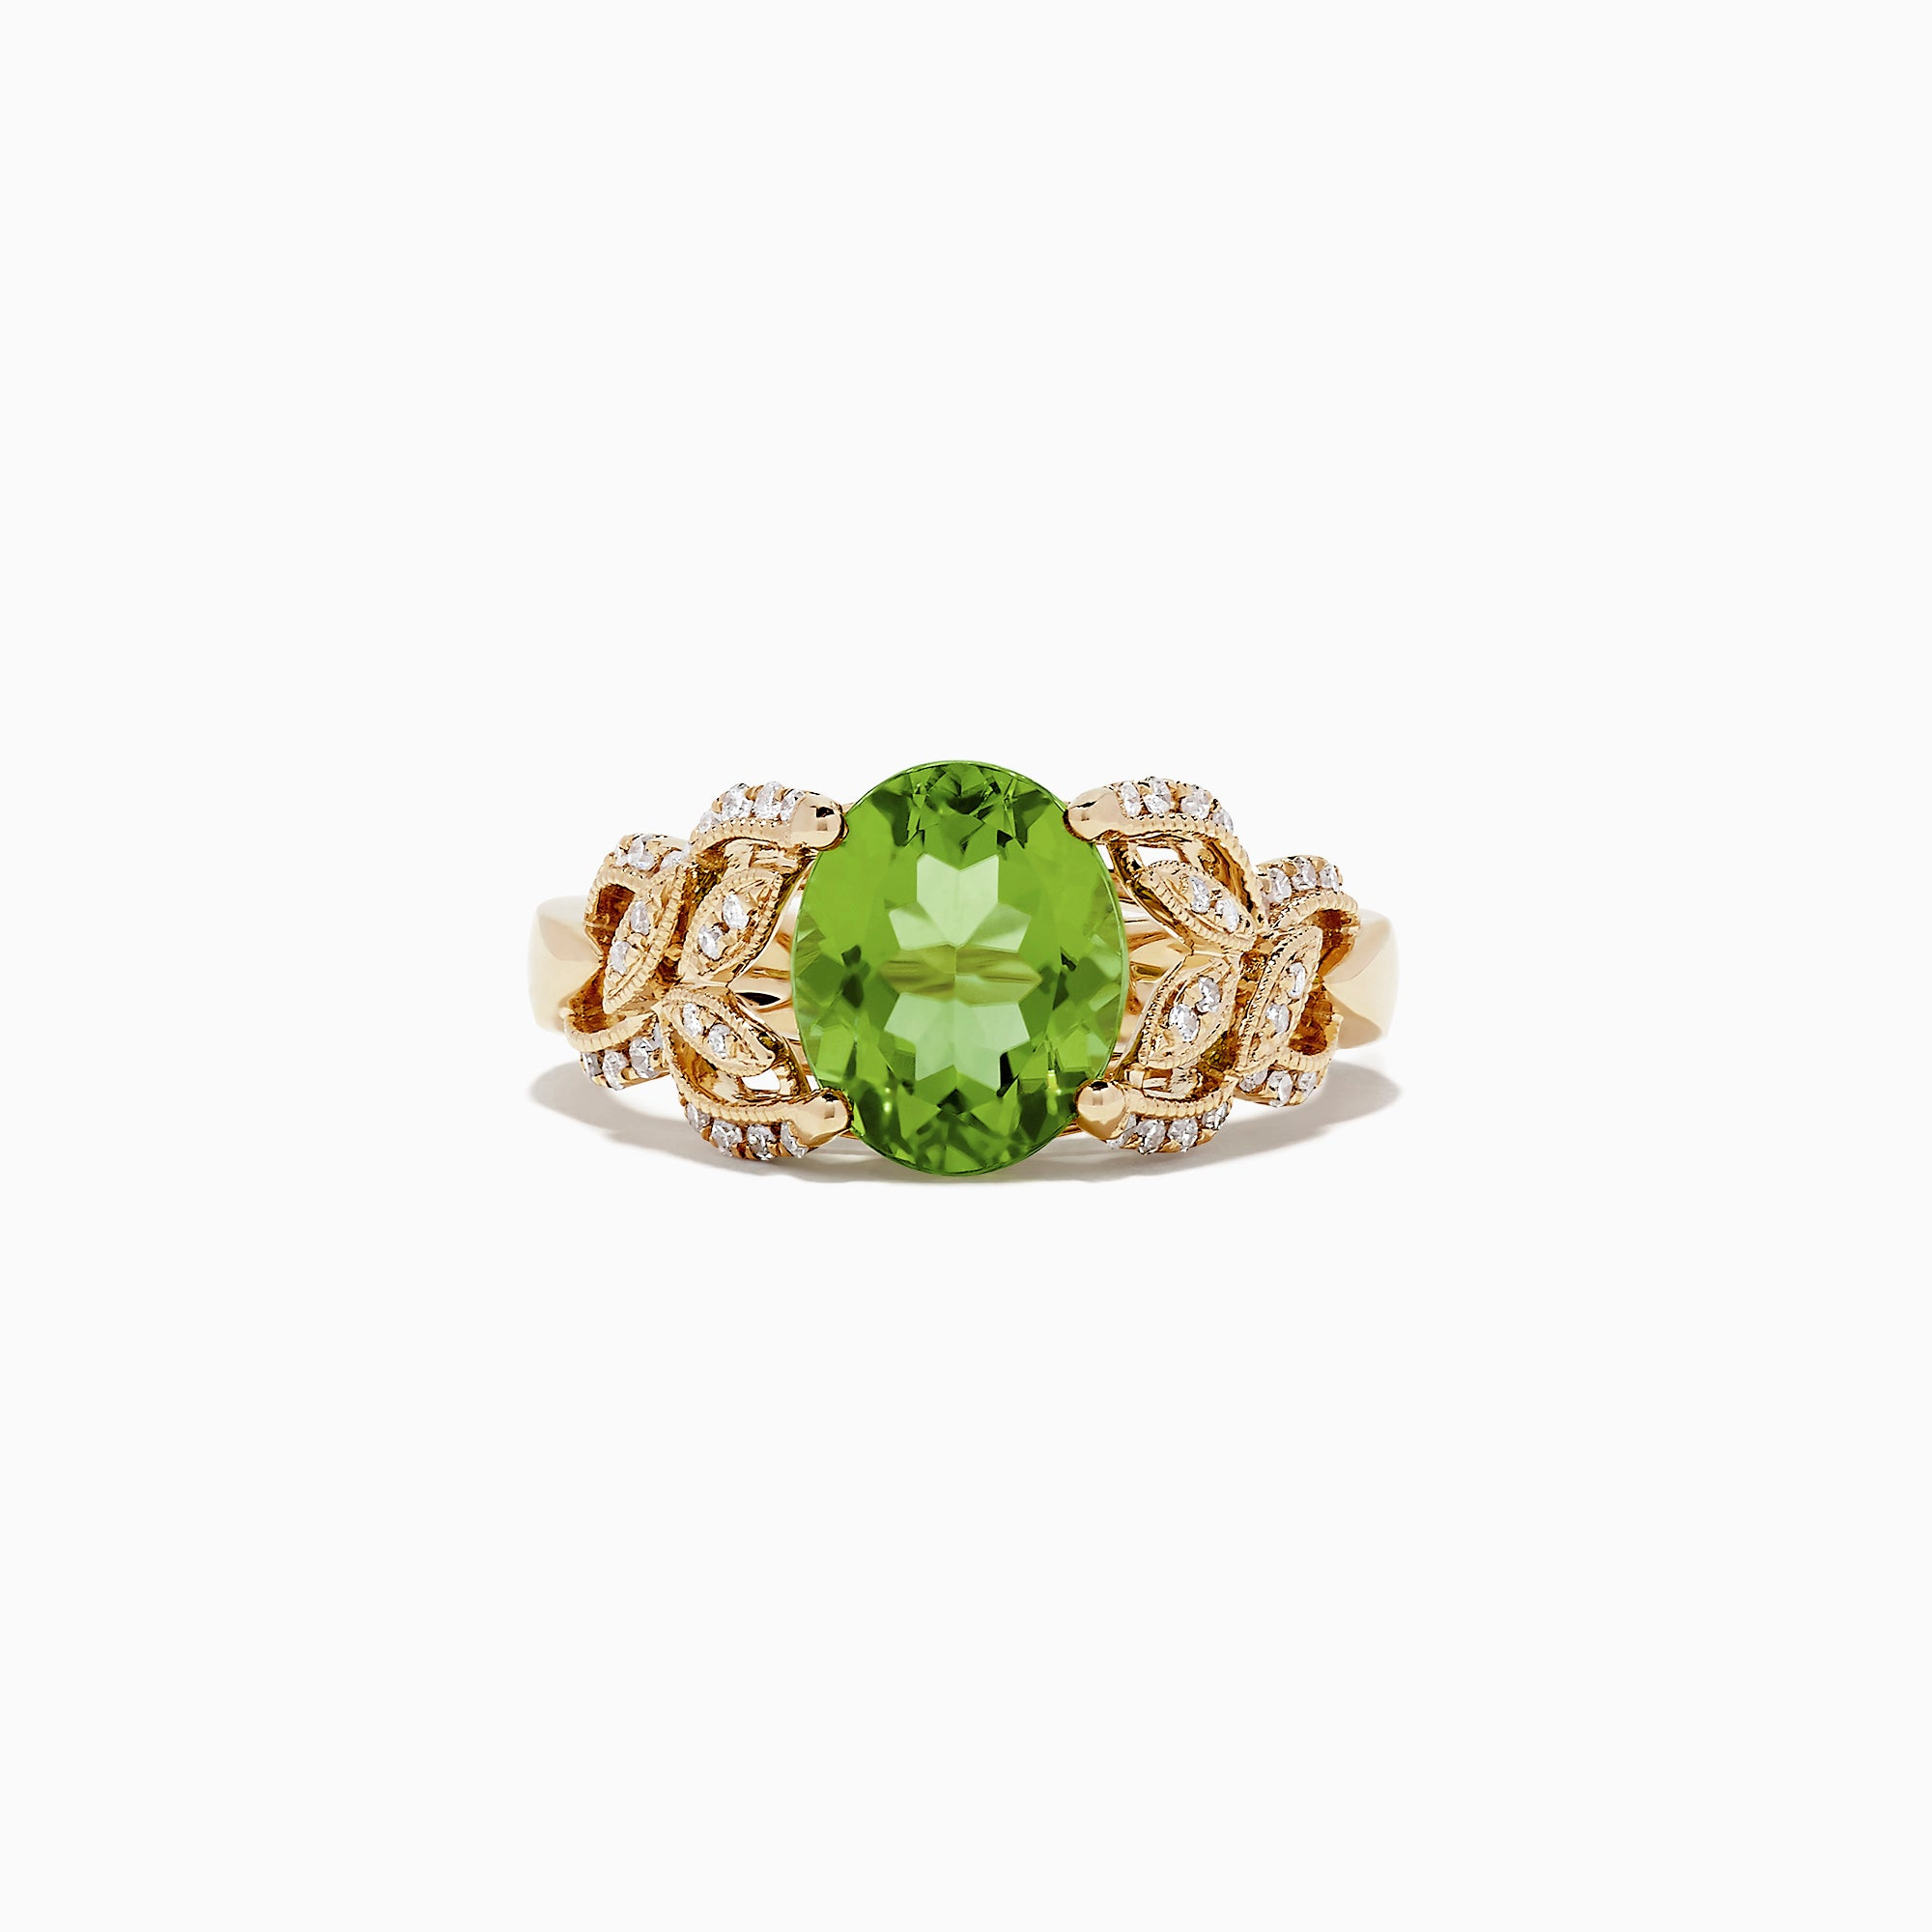 Effy 14K Yellow Gold Peridot and Diamond Ring, 3.13 TCW